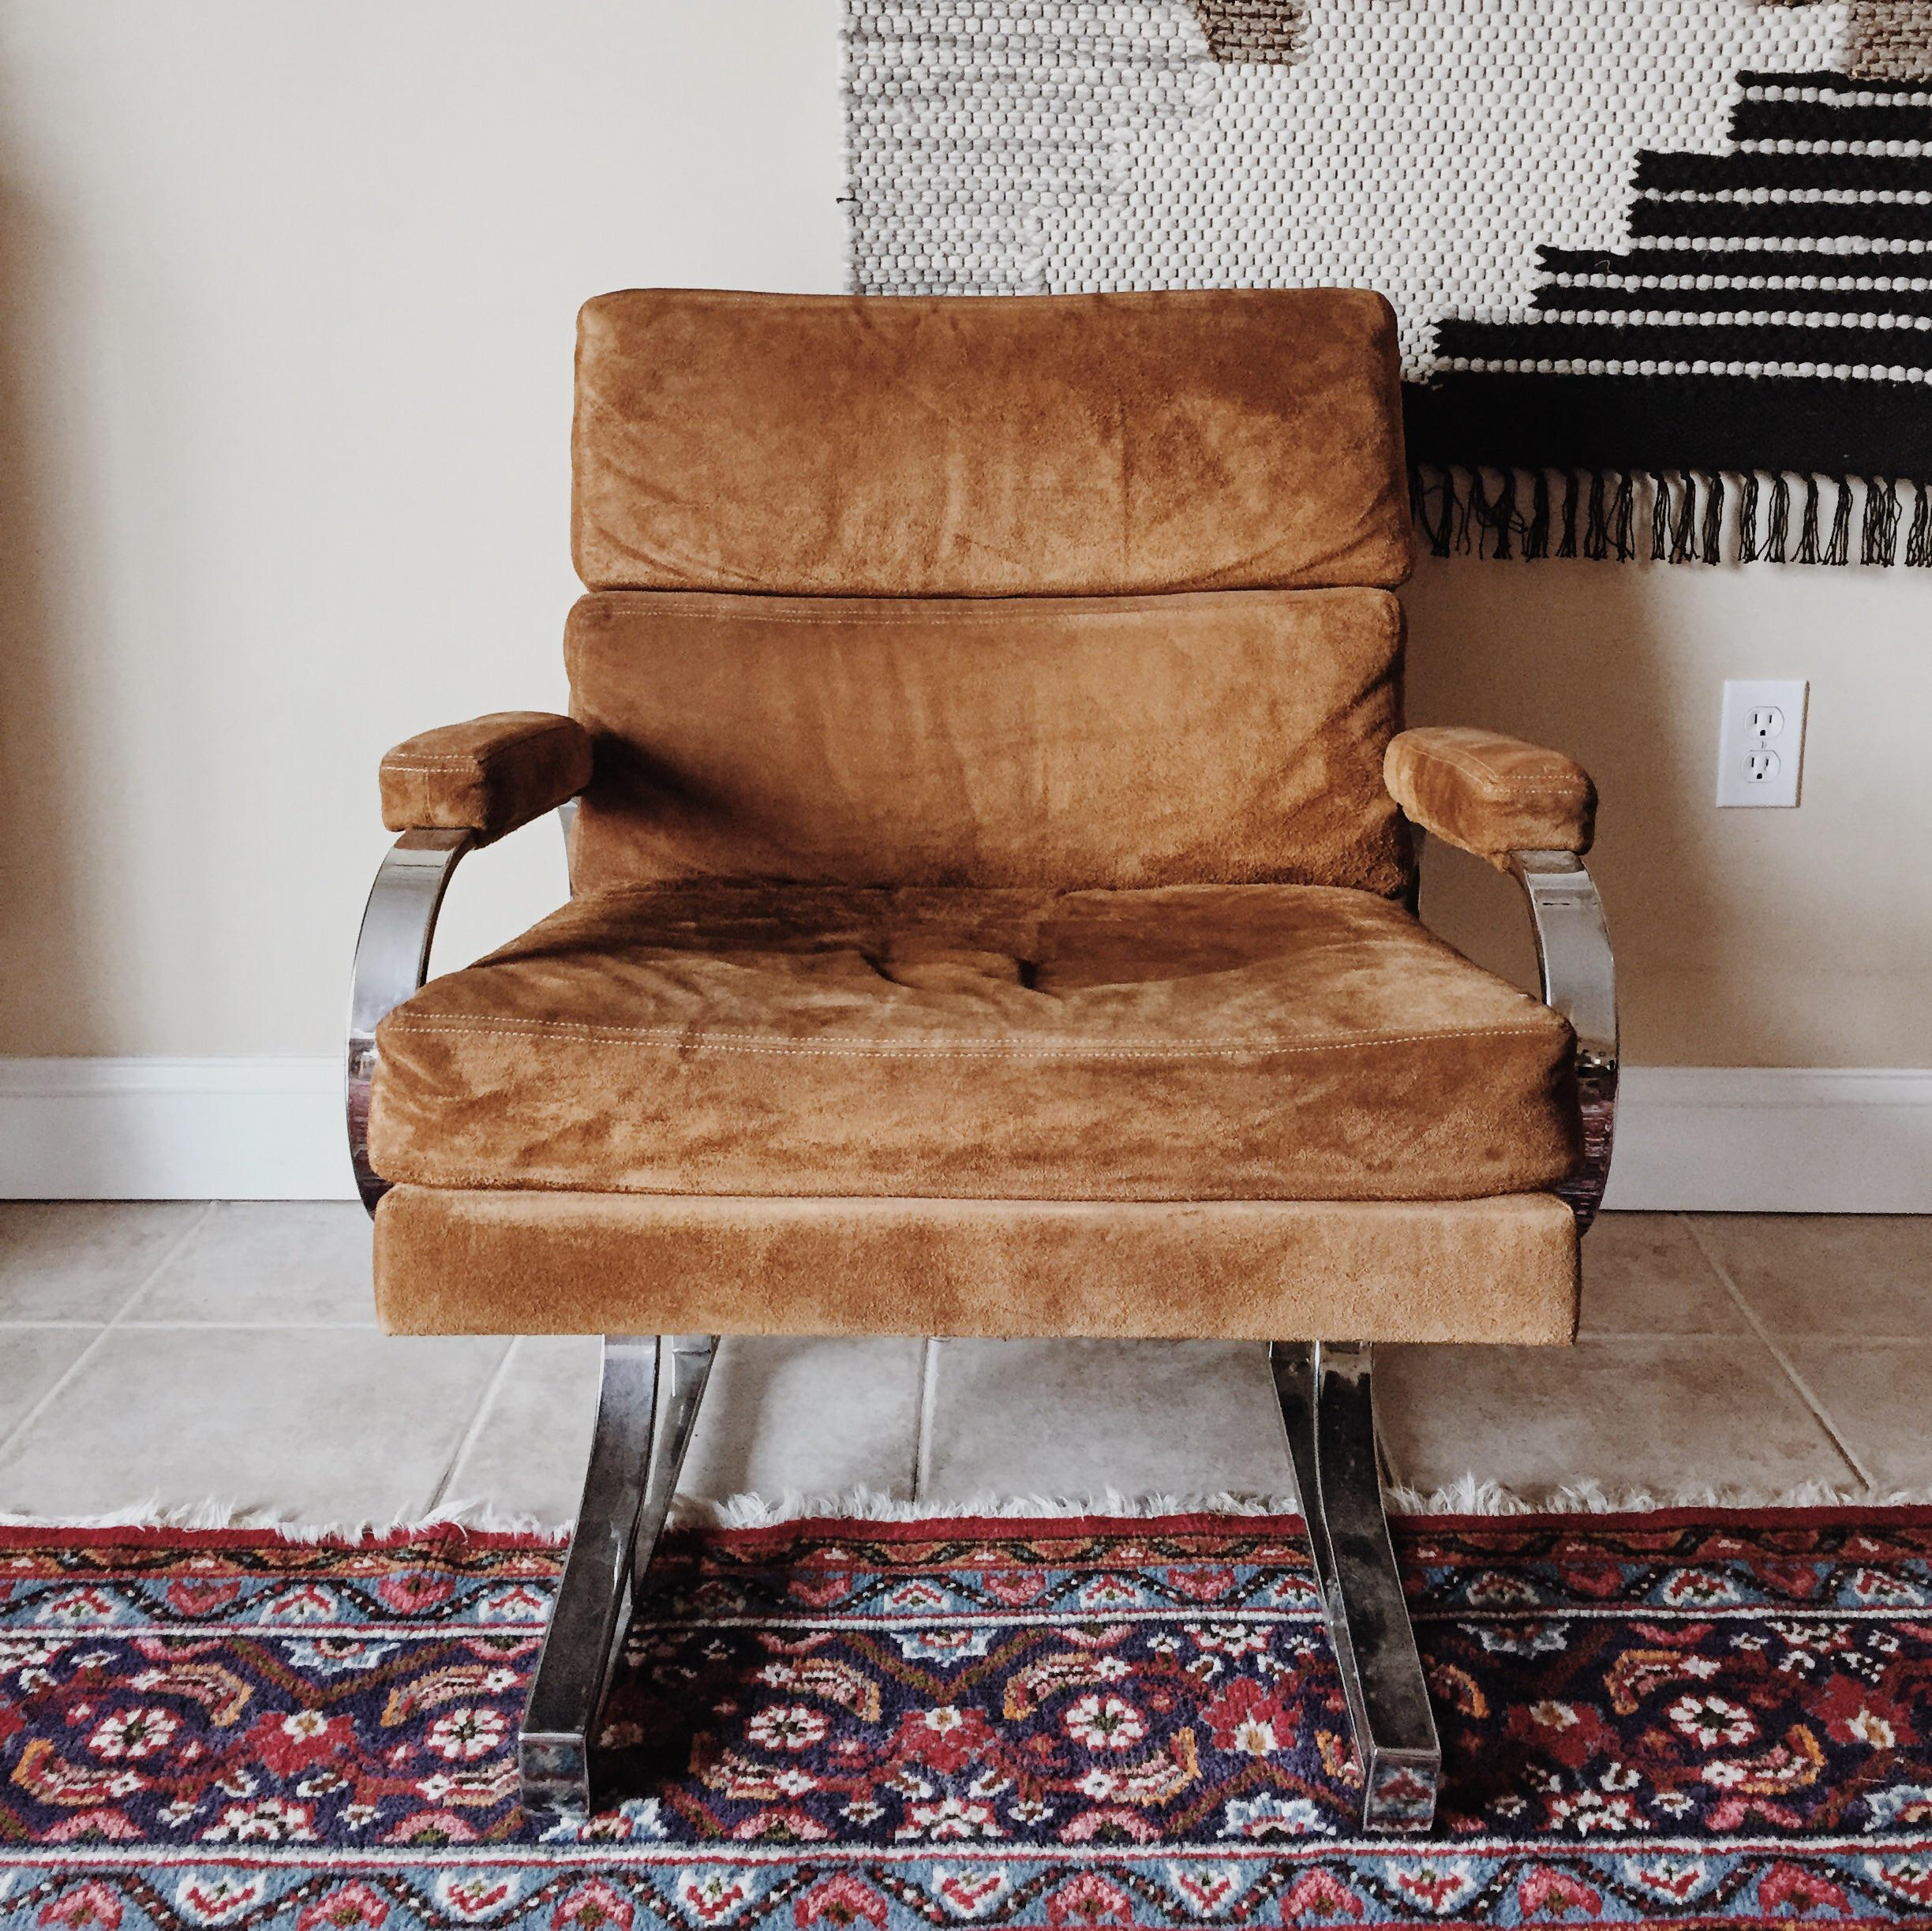 Chrome Patrician Furniture Co Chrome Lounge Chair For Sale   Image 7 Of 7